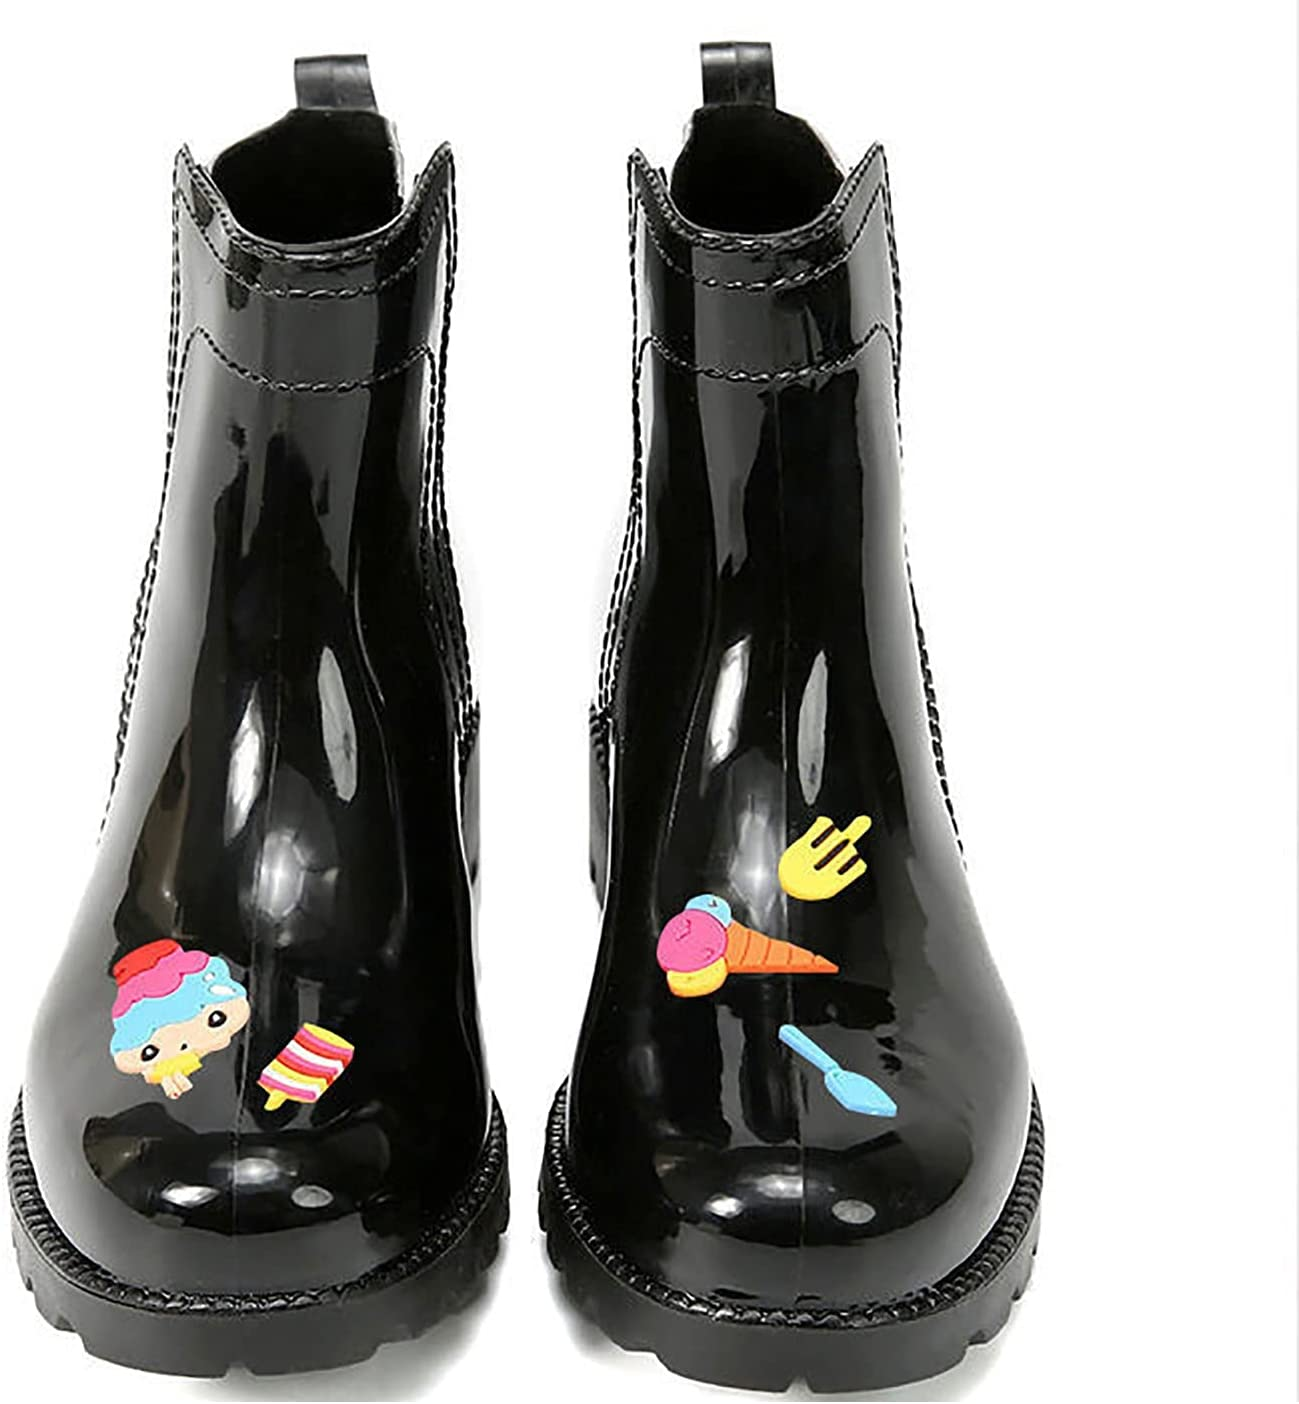 Rain Boots For Women Shoes Fashion Limited price sale Wellies Ankle Max 59% OFF